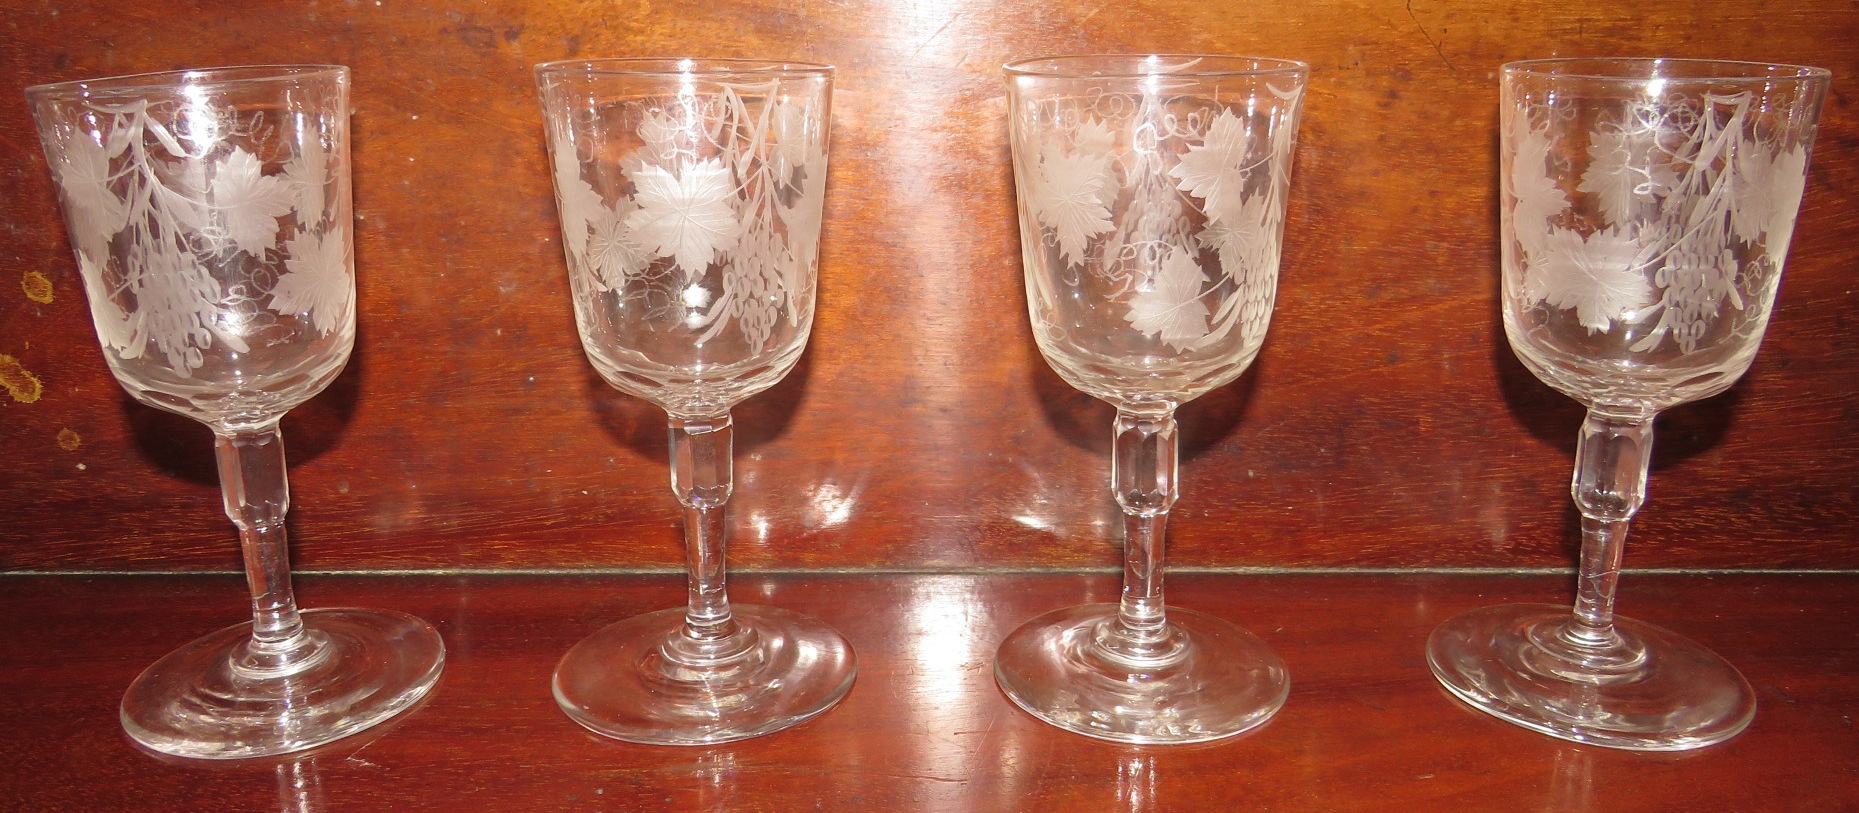 Lot 118 - Four 19th century wine glasses, the bowls etched with vines, the stems with octagonal knop, height